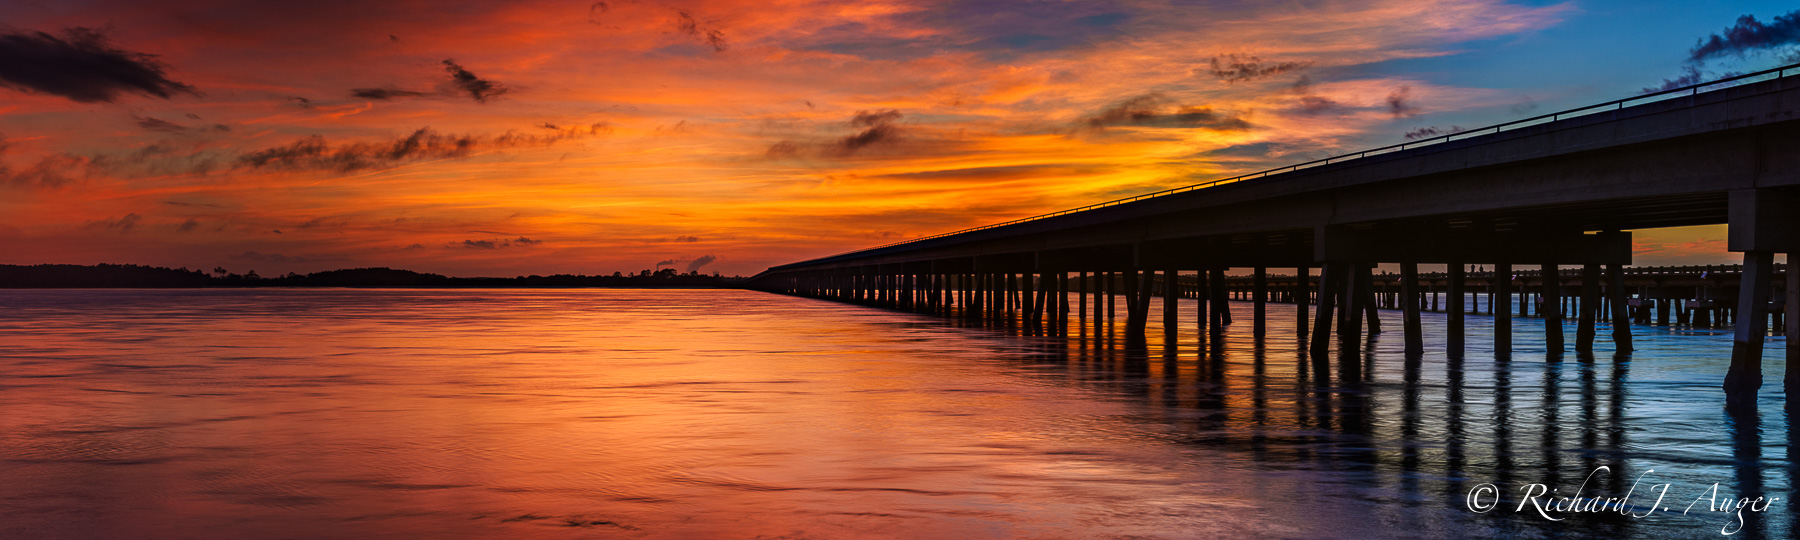 Amelia Island State Park, Bridge, Orange, Sunset, Water, Sky, Panorama, Landscape, Photograph, Photographer